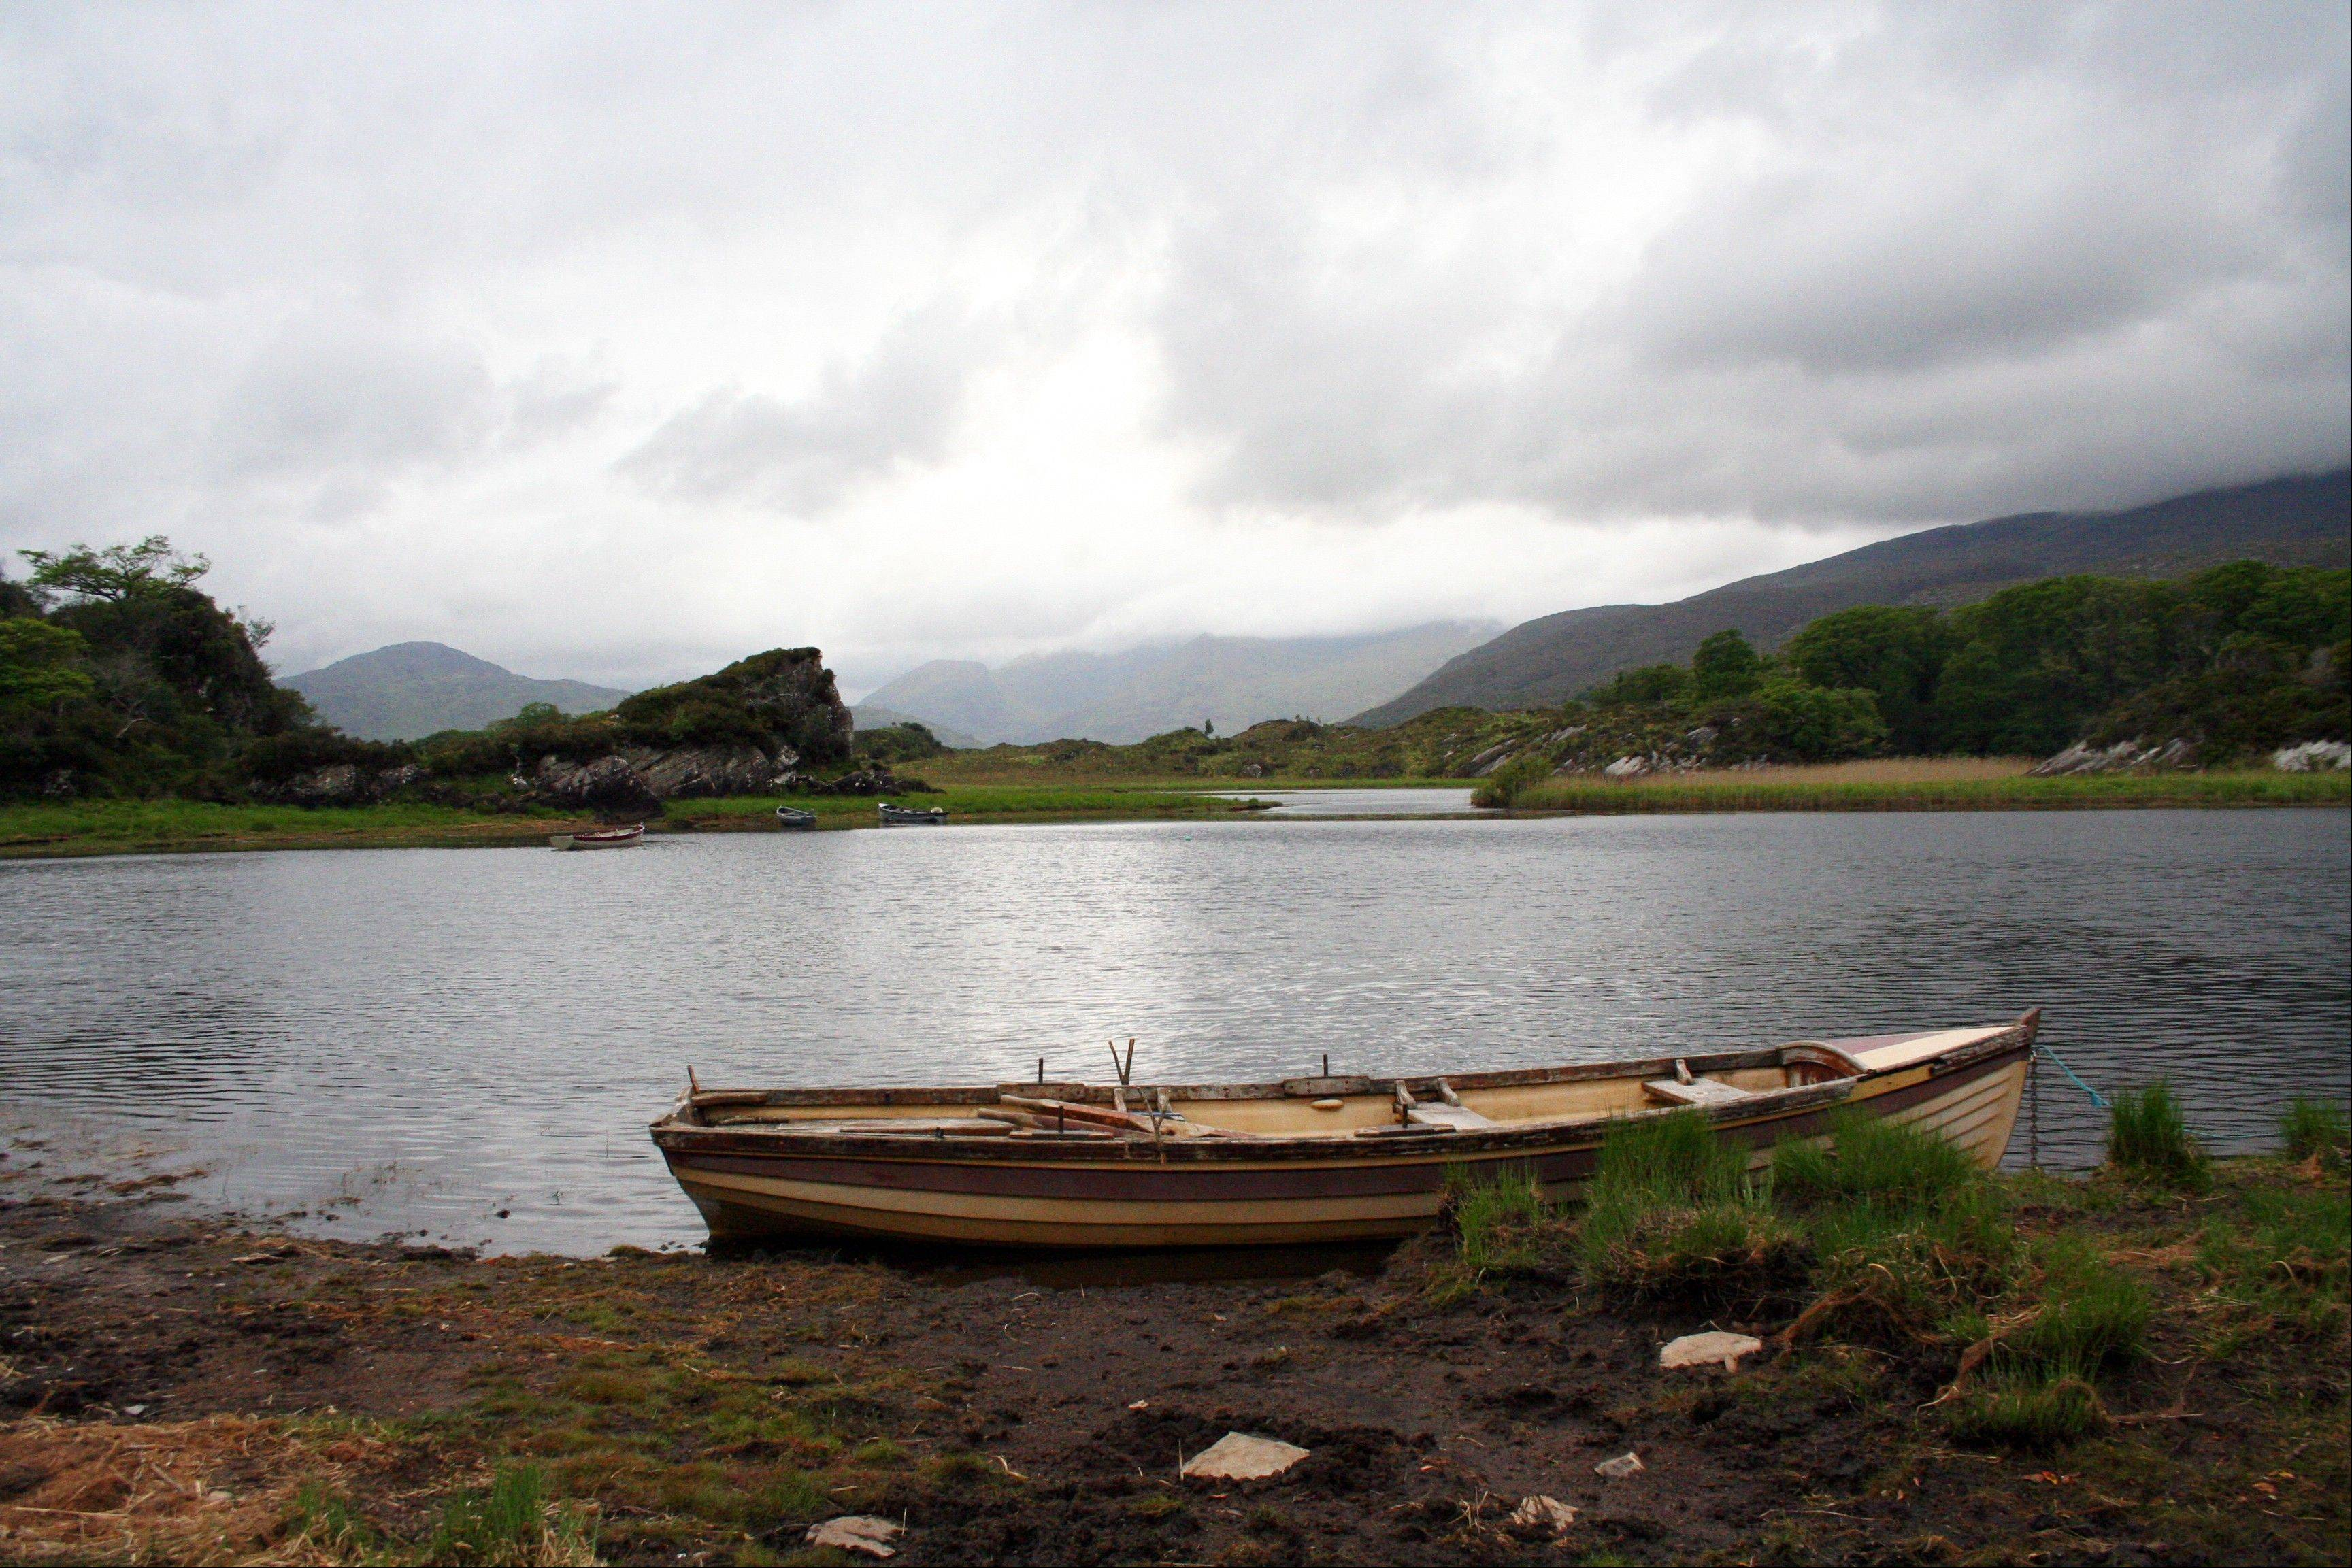 Muckross Lake in Killarney National Park, County Kerry, Ireland. Ireland is about 300 miles from north to south and a driving trip in the country's western region takes you along hilly, narrow roads with spectacular views ranging from seaside cliffs to verdant farmland.